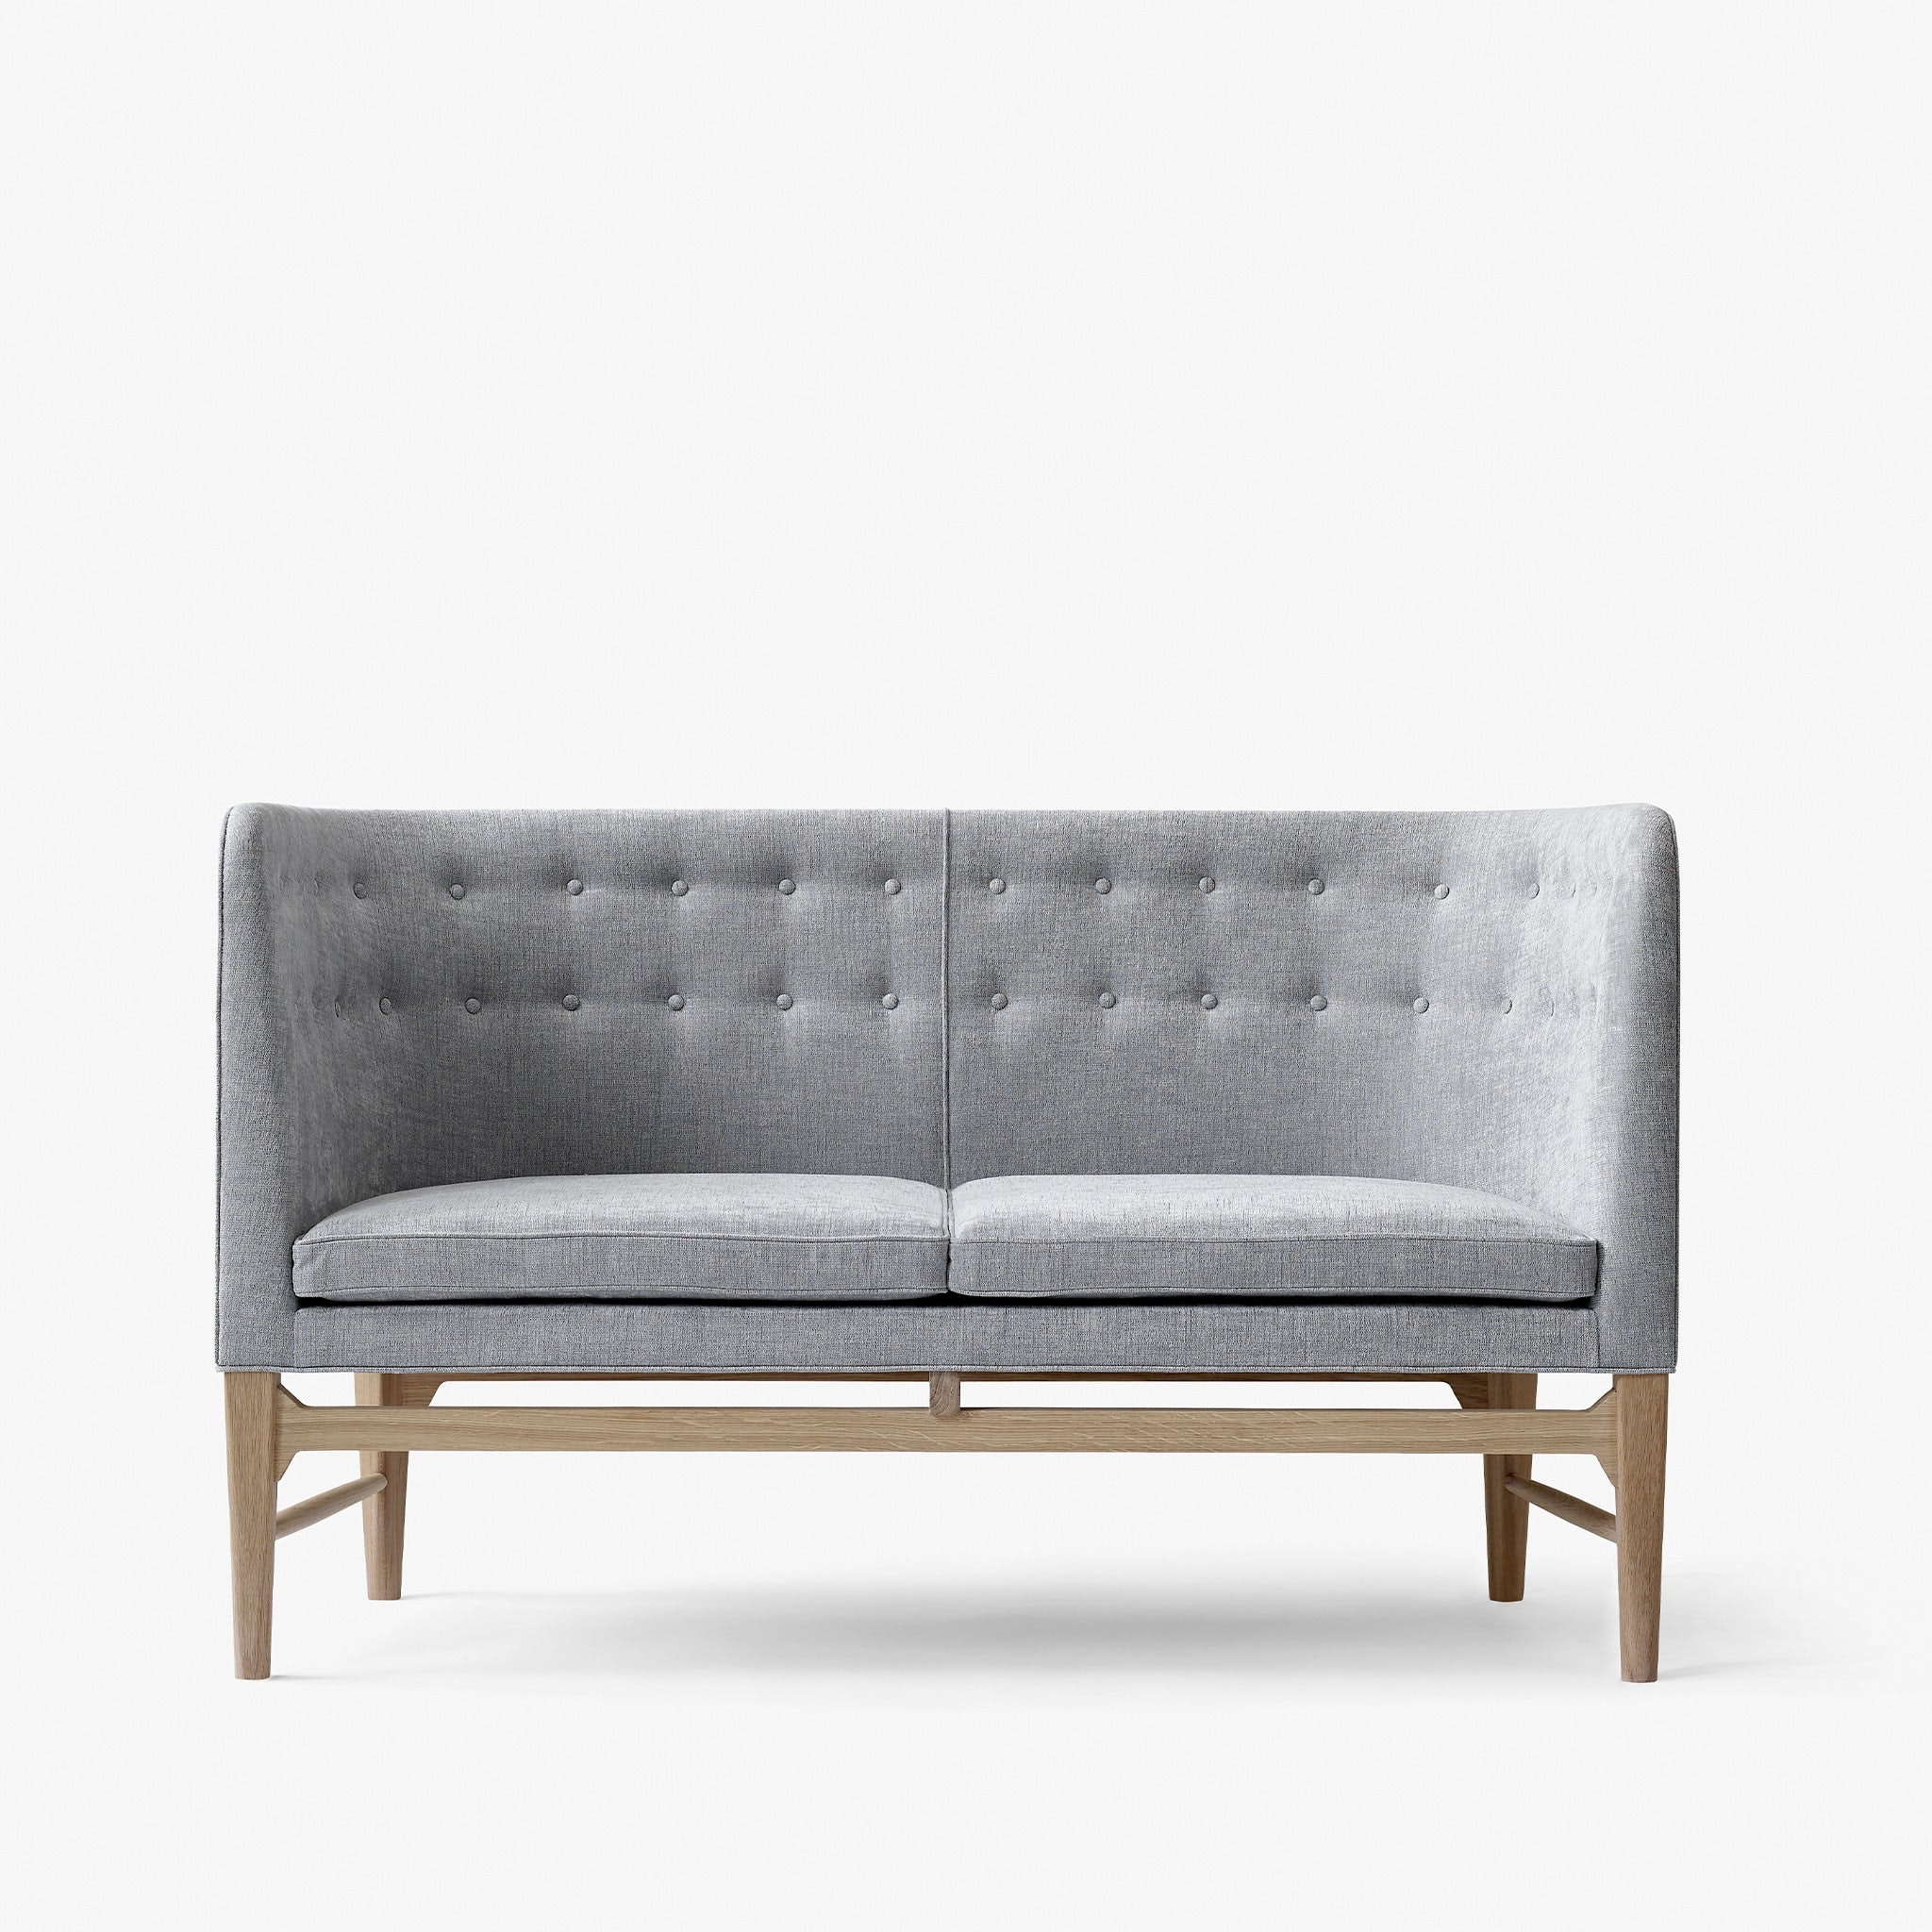 Mayor AJ6 Sofa by &Tradition